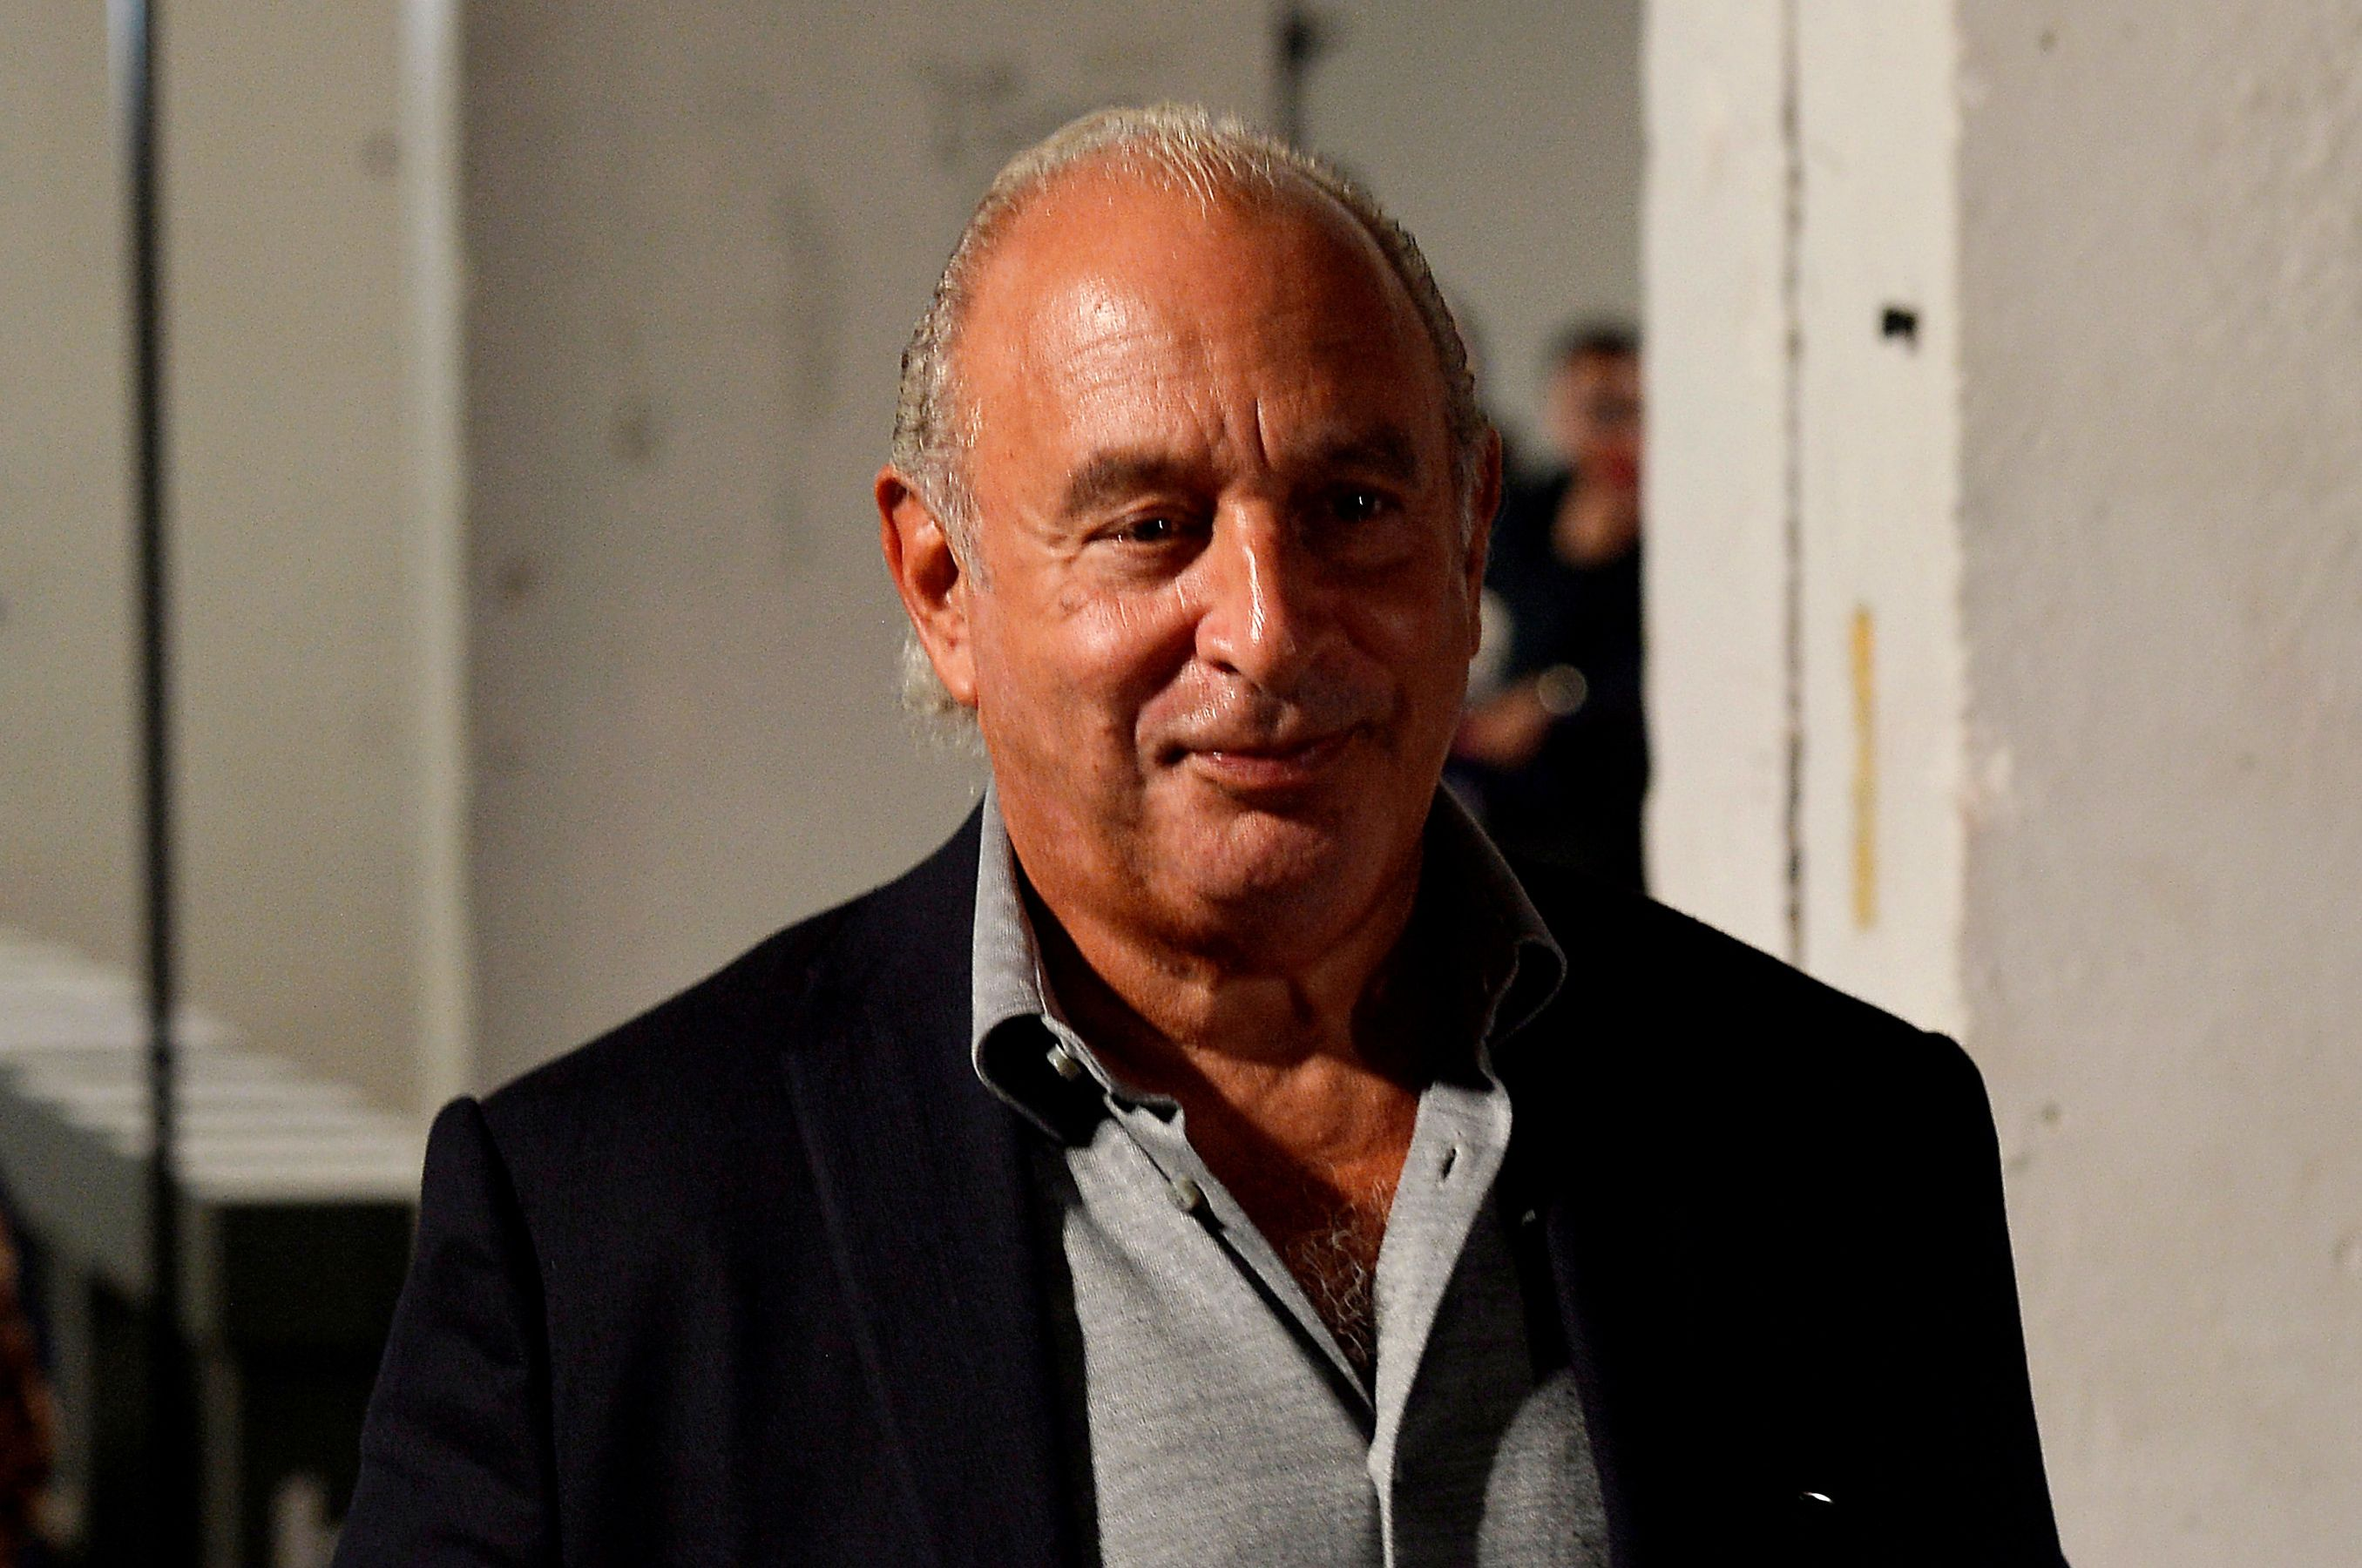 Retail tycoon Philip Green charged with assault after alleged touching